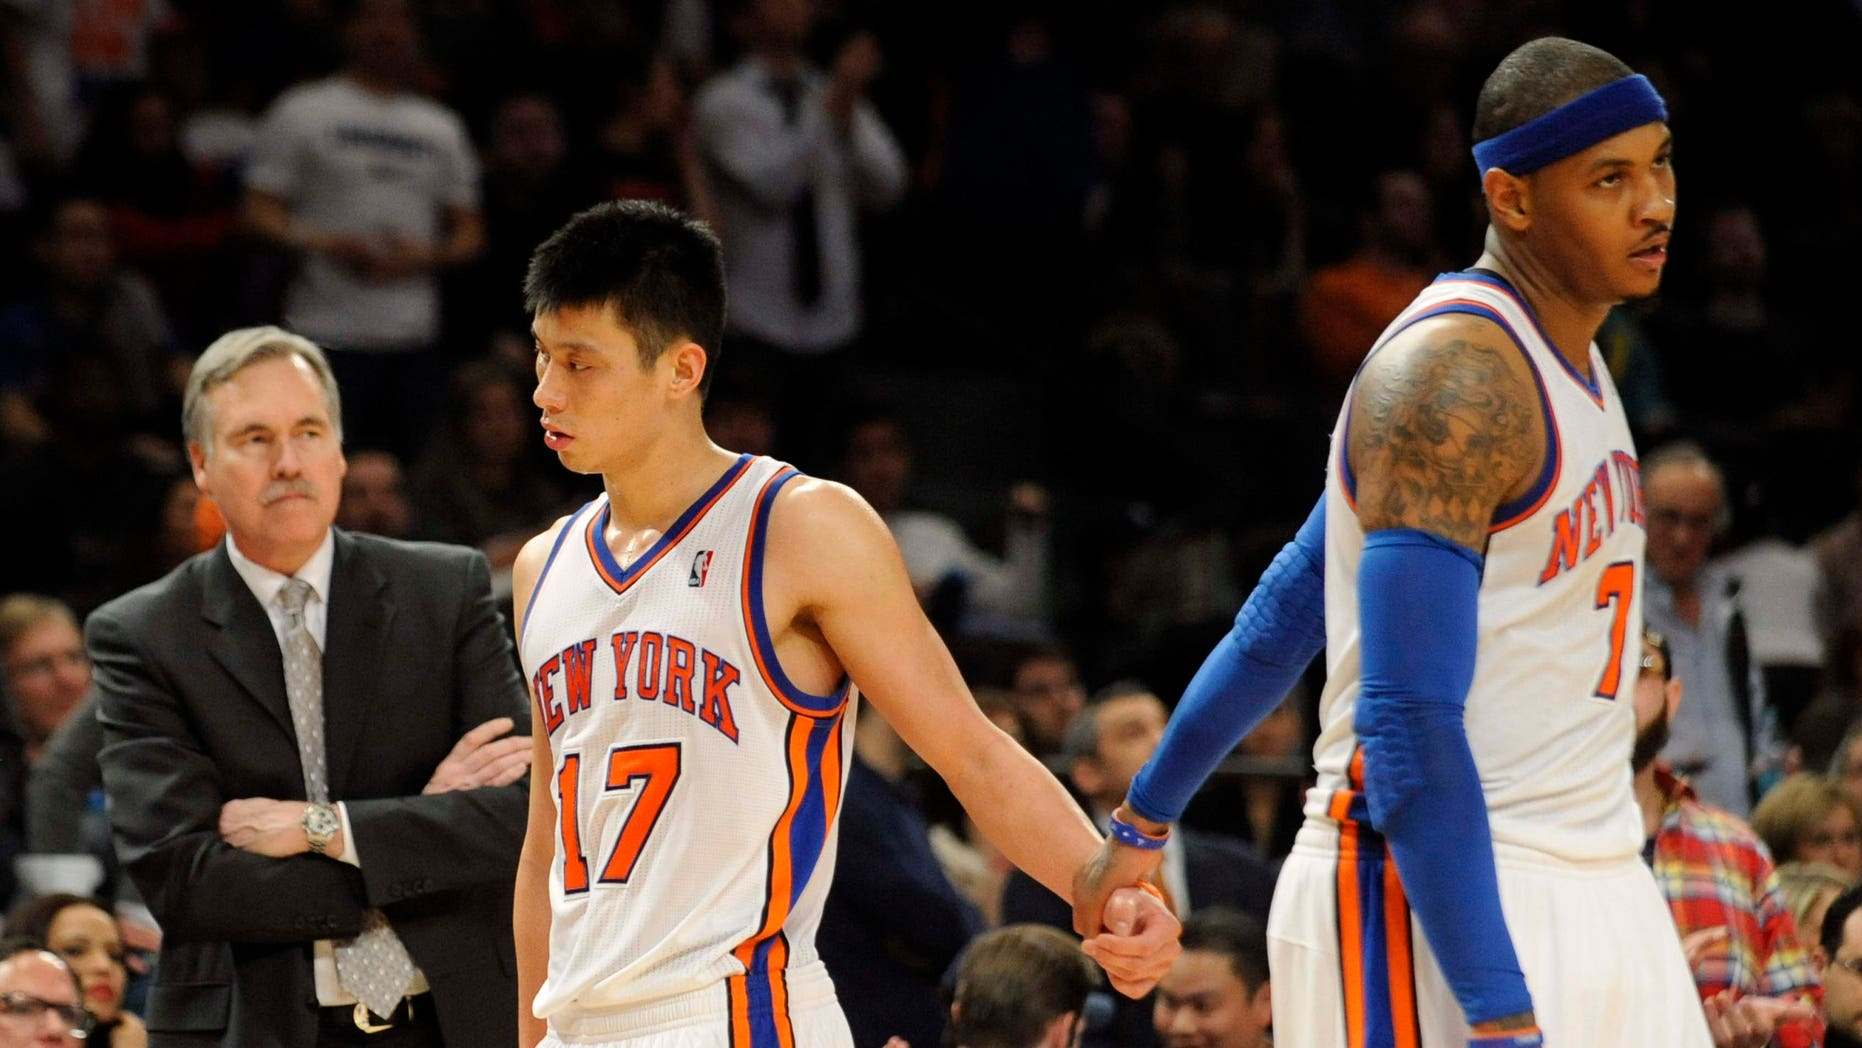 New York Knicks' Carmelo Anthony, right, holds Jeremy Lin's hand as he leaves the game after fouling out during the fourth quarter of an NBA basketball game against the New Jersey Nets, Monday, Feb. 20, 2012, at Madison Square Garden in New York. The Nets defeated the Knicks 100-92. Anthony shot 4 of 11 and scored 11 points. Lin finished with 21 points, nine assists and seven rebounds. At left is Knicks coach Mike D'Antoni. (AP Photo/Bill Kostroun)